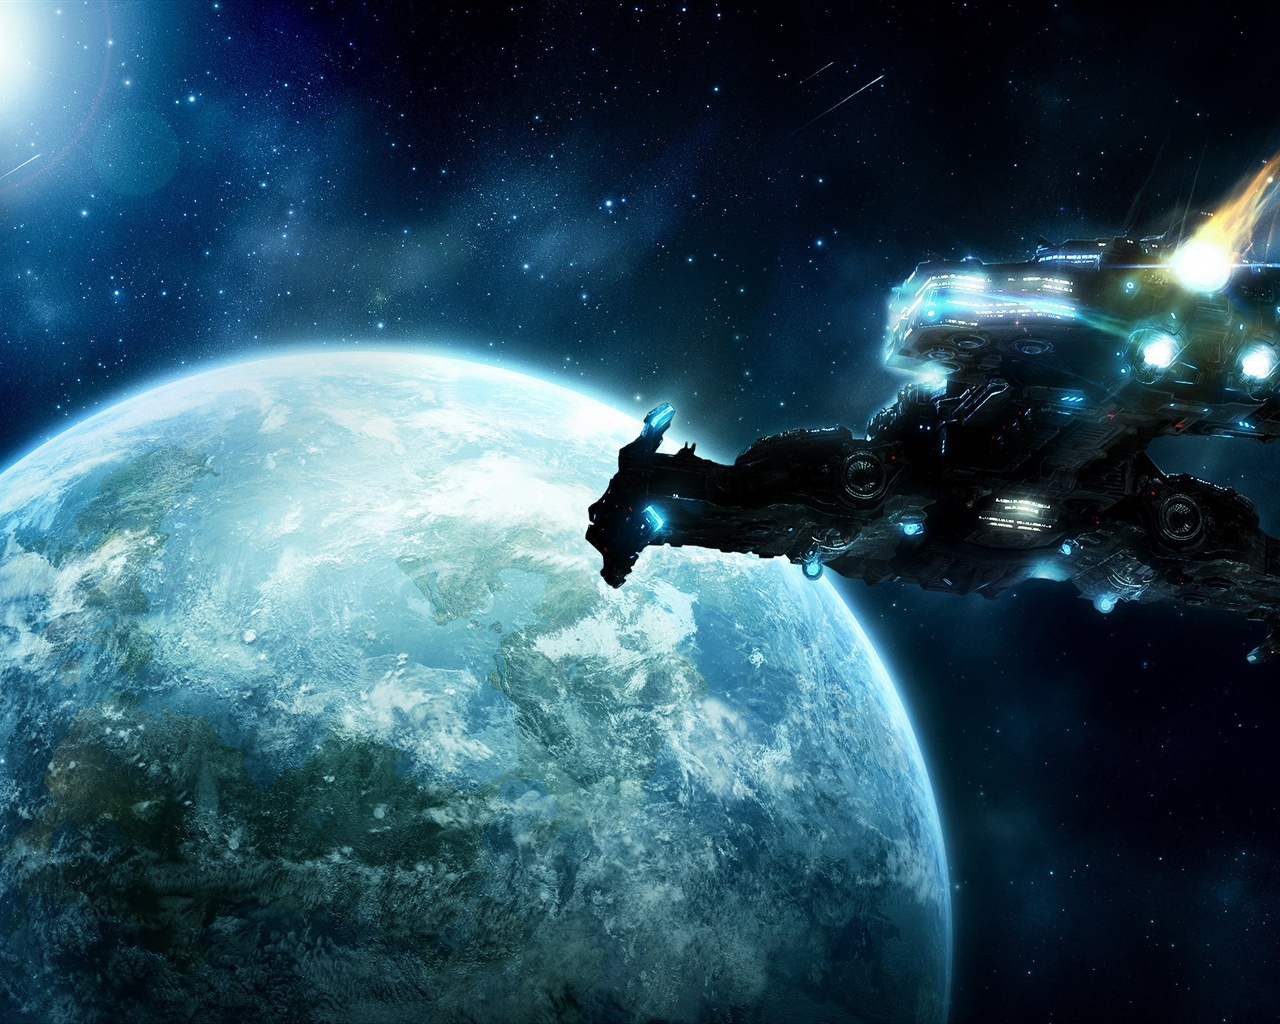 Iphone 5c Wallpaper Hd Wallpaper Spaceship Flying To The Earth 2560x1600 Hd